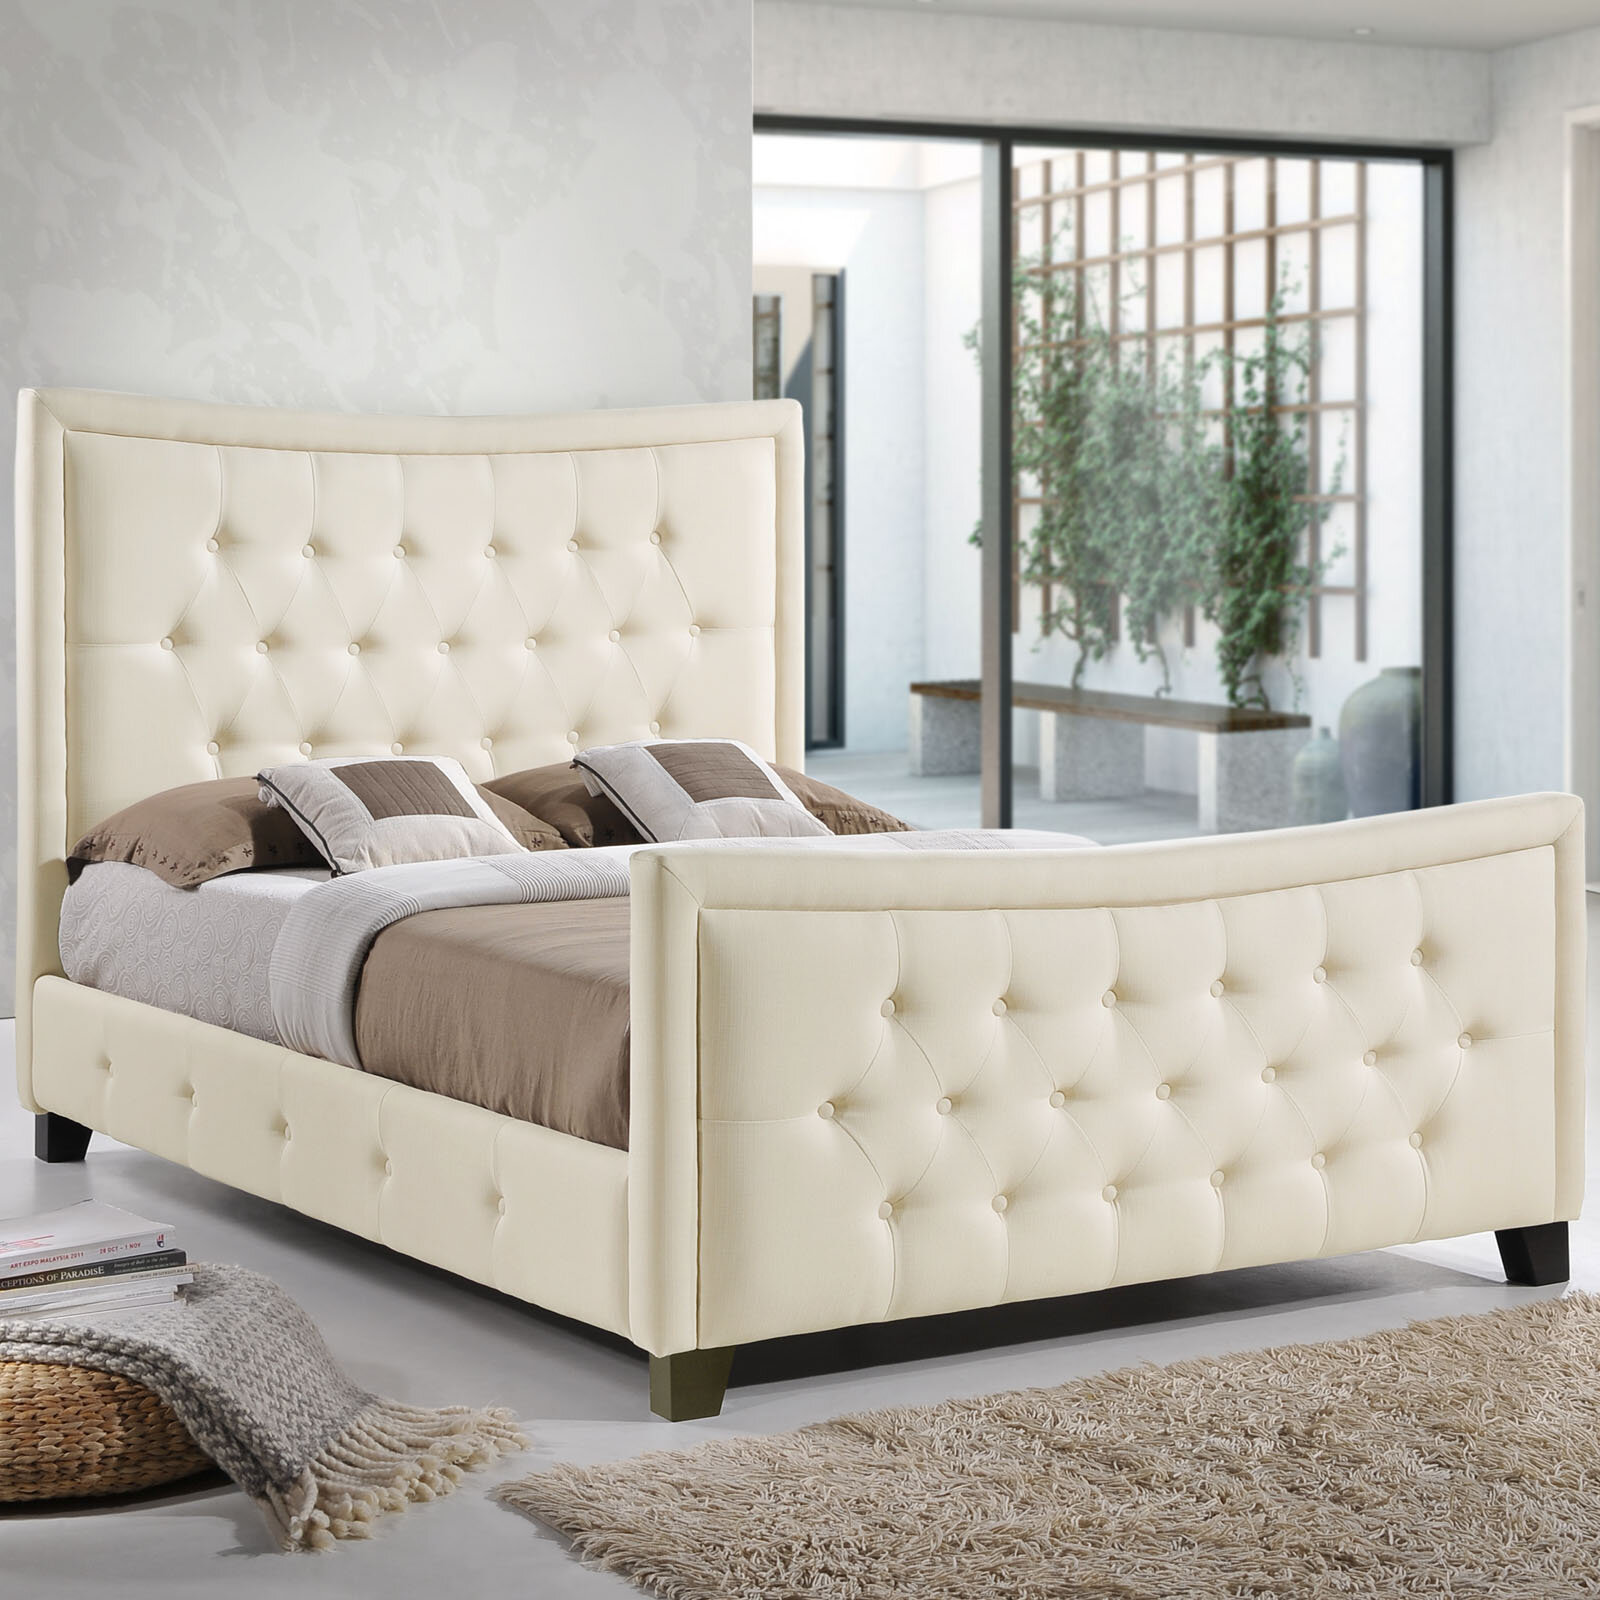 Modway Queen Upholstered Storage Platform Bed Wayfair Ca